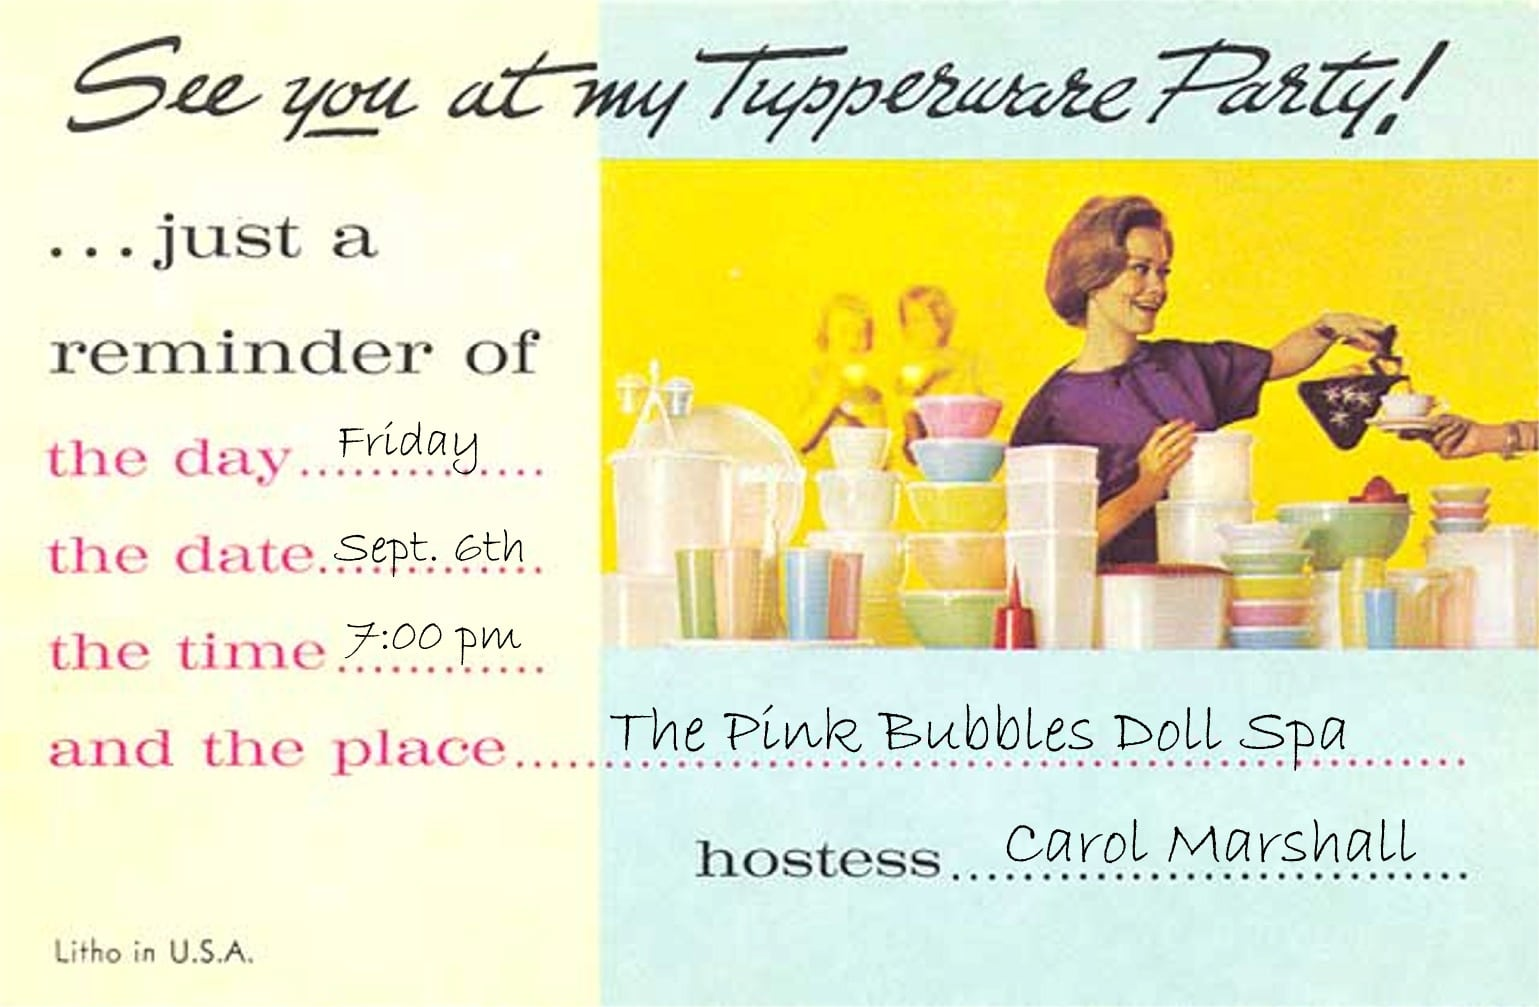 tupperware party invitations - Ideal.vistalist.co